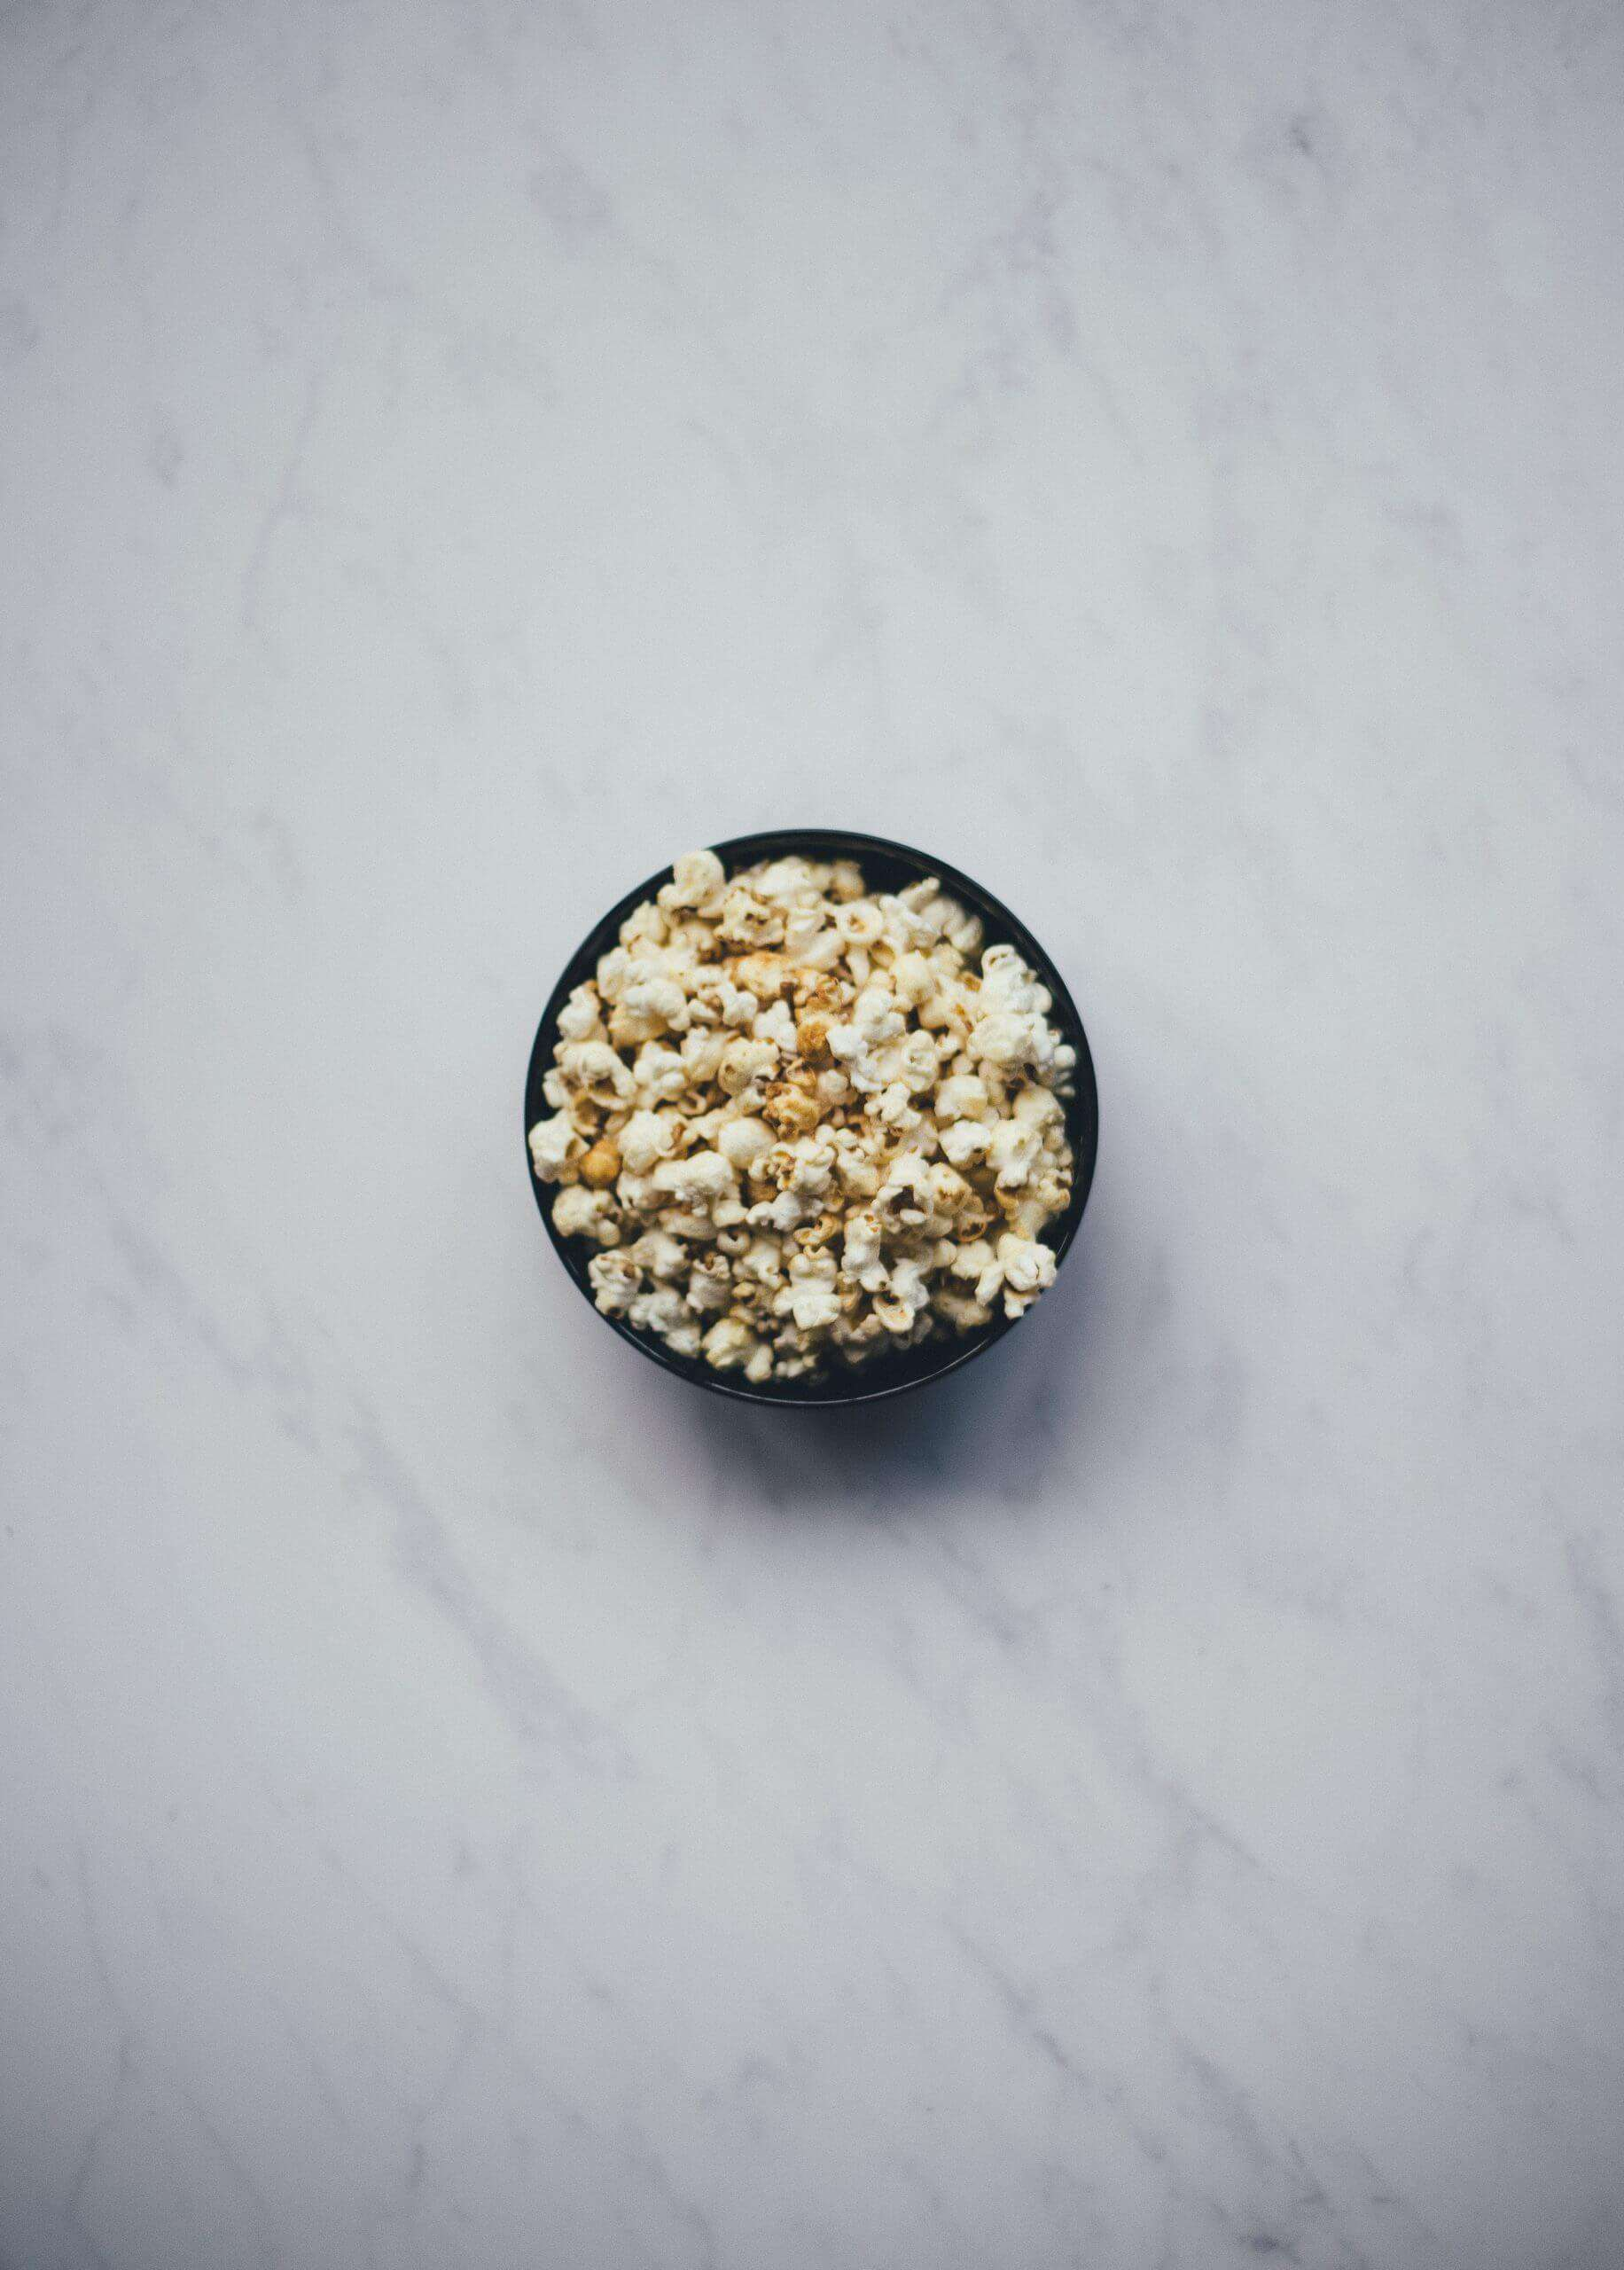 Benefits Of Low-Fat Snacks For Your Family